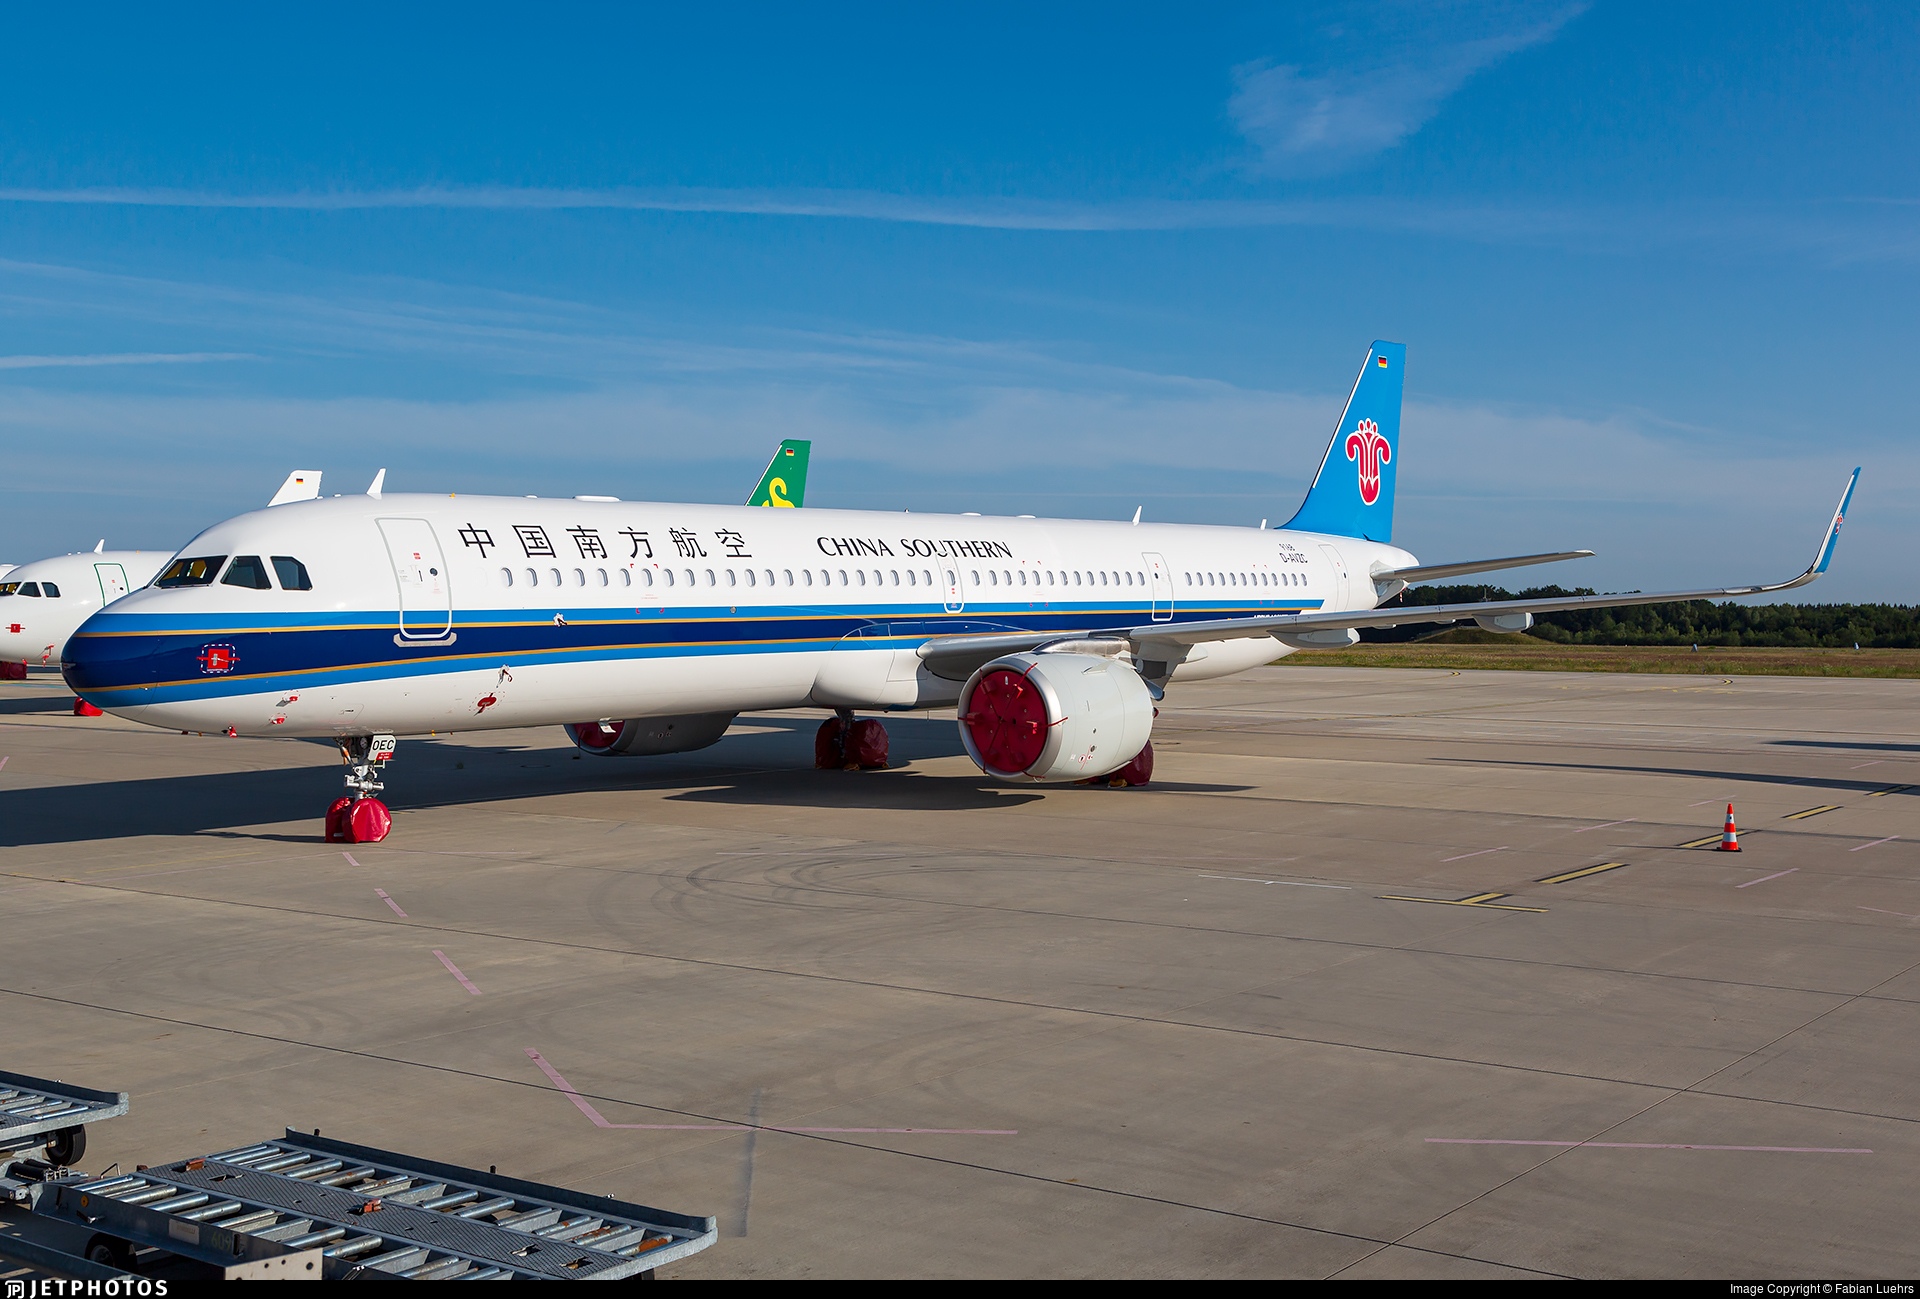 D-AVZC - Airbus A321-253NX - China Southern Airlines